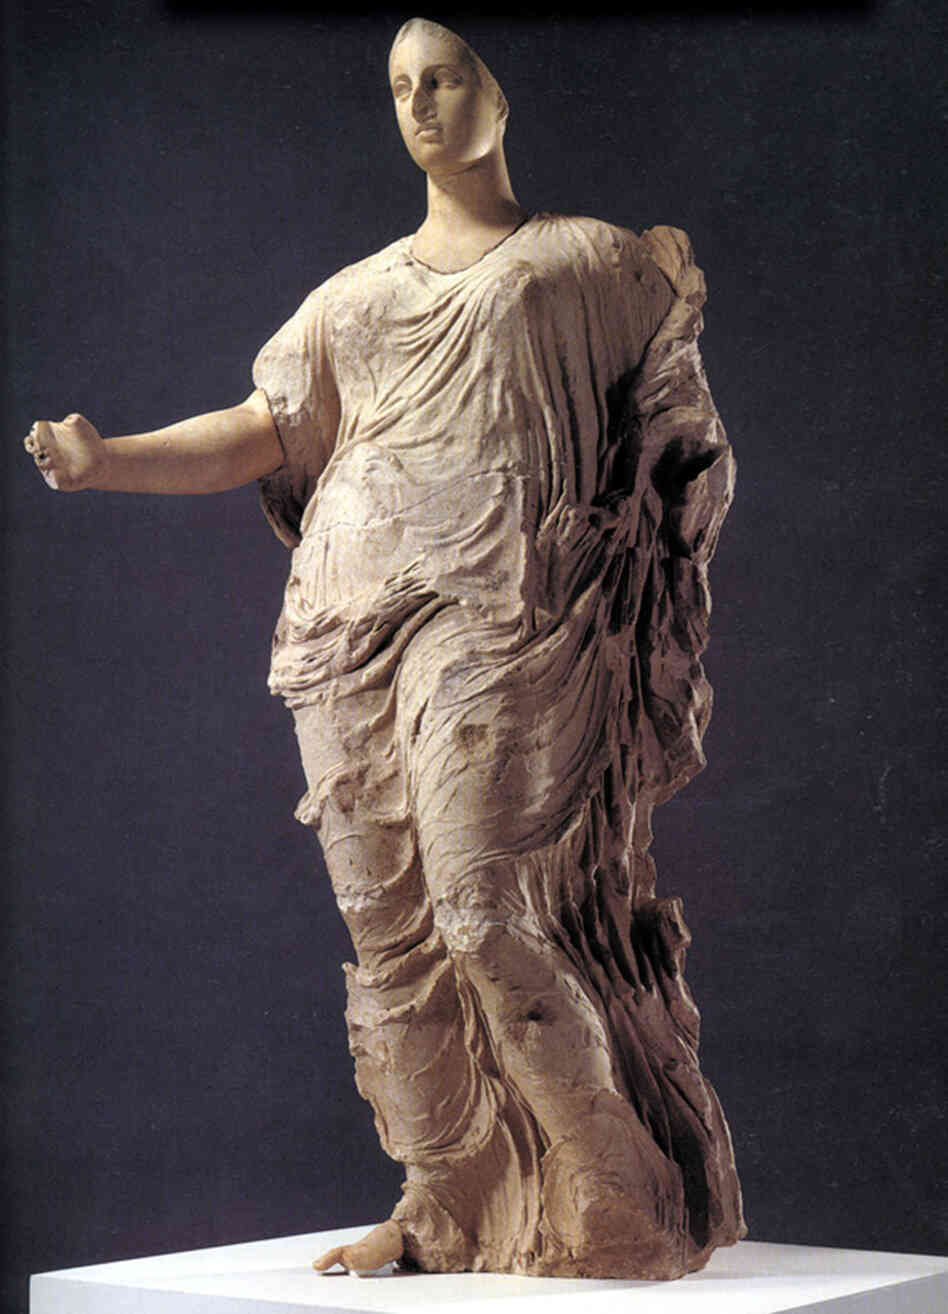 This 4th century B.C. stone sculpture of Aphrodite, goddess of love, was illegally excavated from Sicily. The Getty Museum purchased it in 1988. In 2007, the Getty agreed to return it — along with 40 other disputed artifacts — to the Italian government. The goddess will be officially installed at her new home — a small museum in Sicily — on Tuesday.